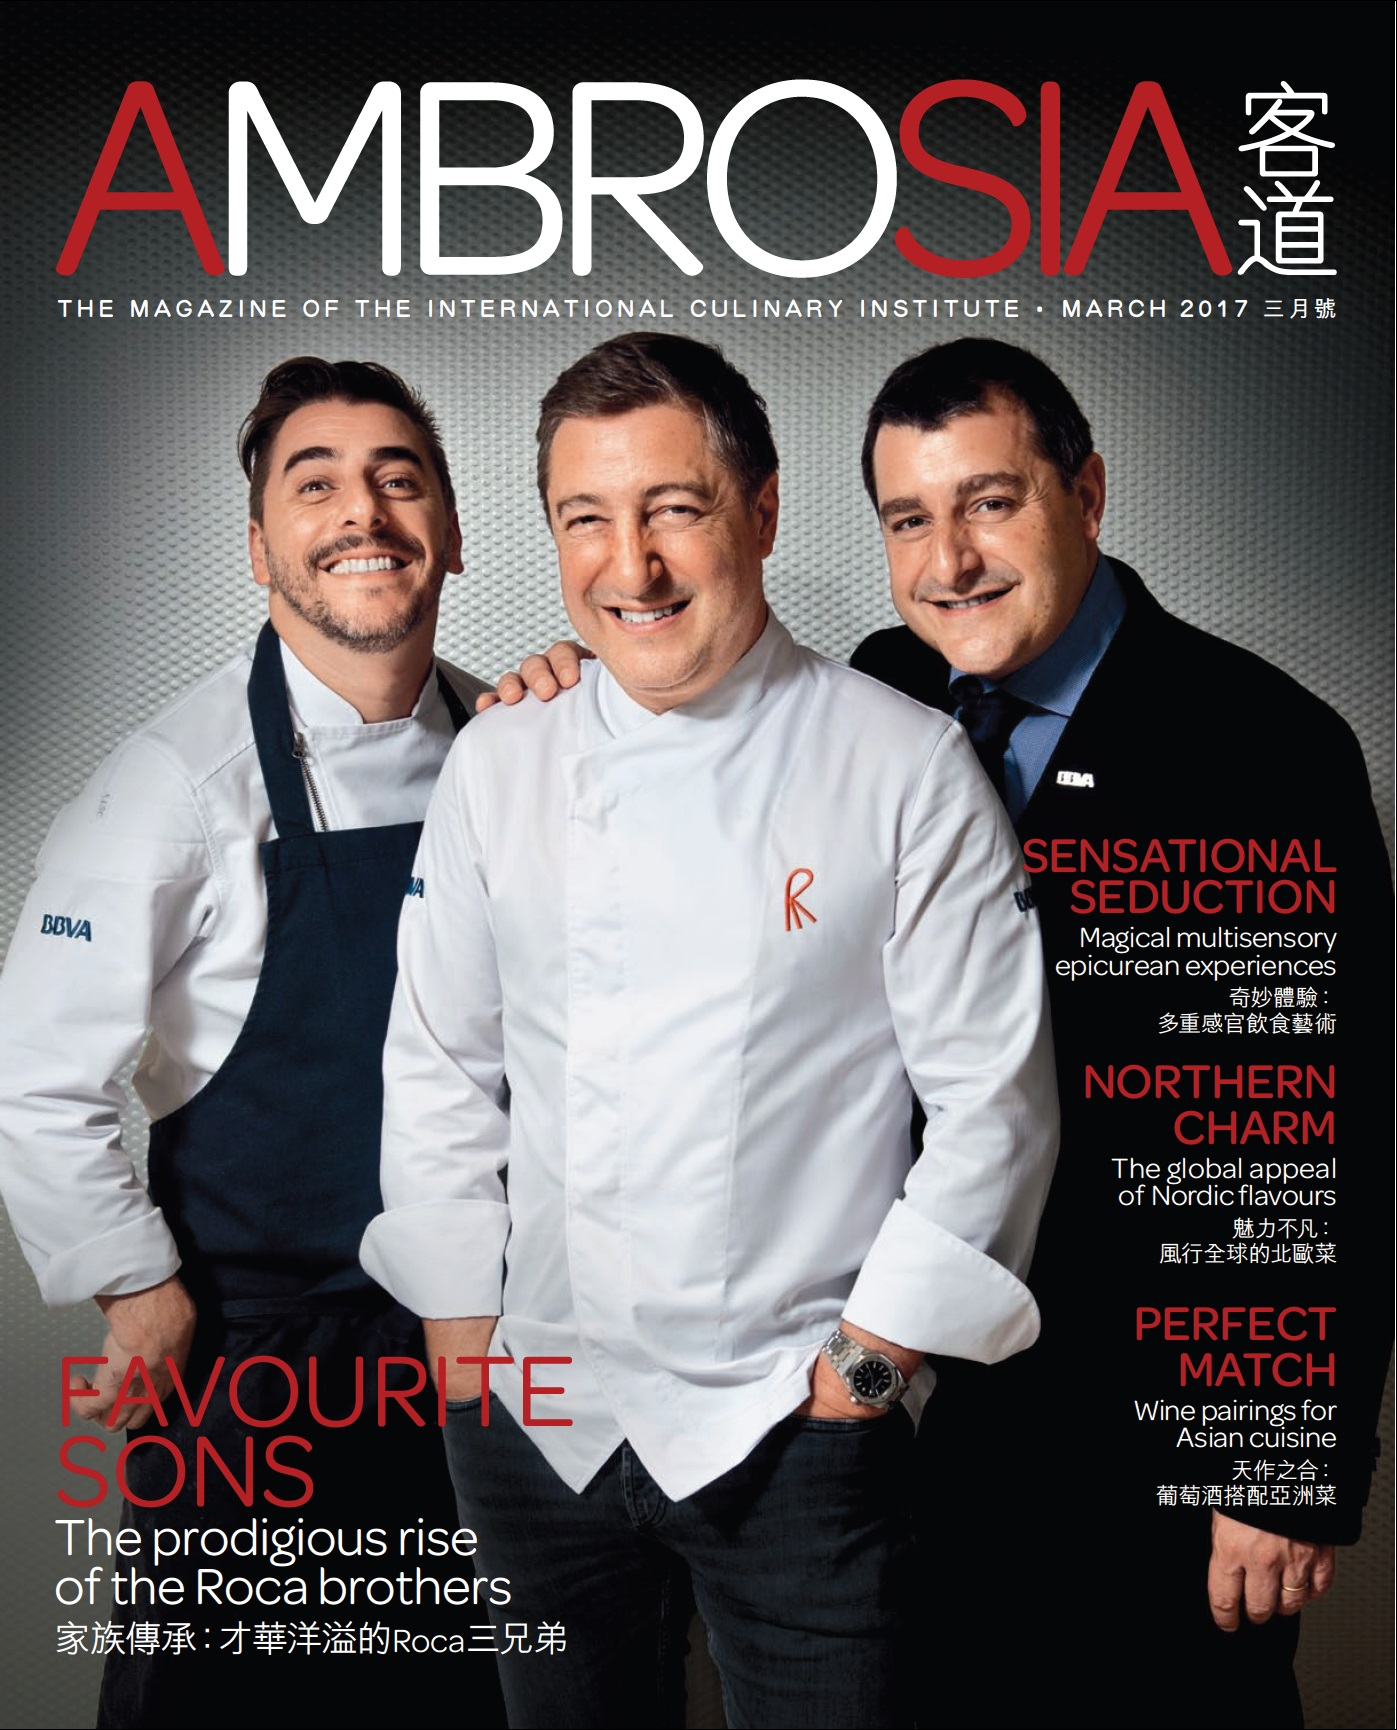 AMBROSIA (March 2017 issue)